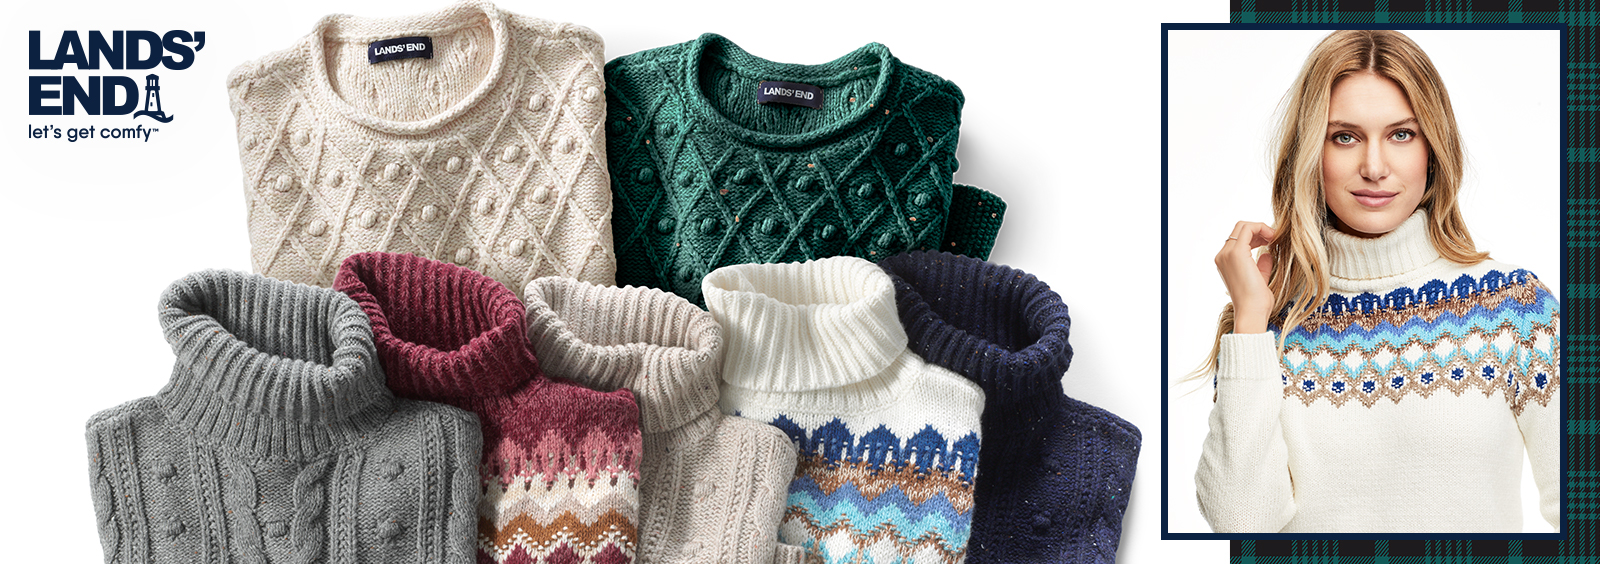 4 Tips on Styling a Turtleneck Sweater